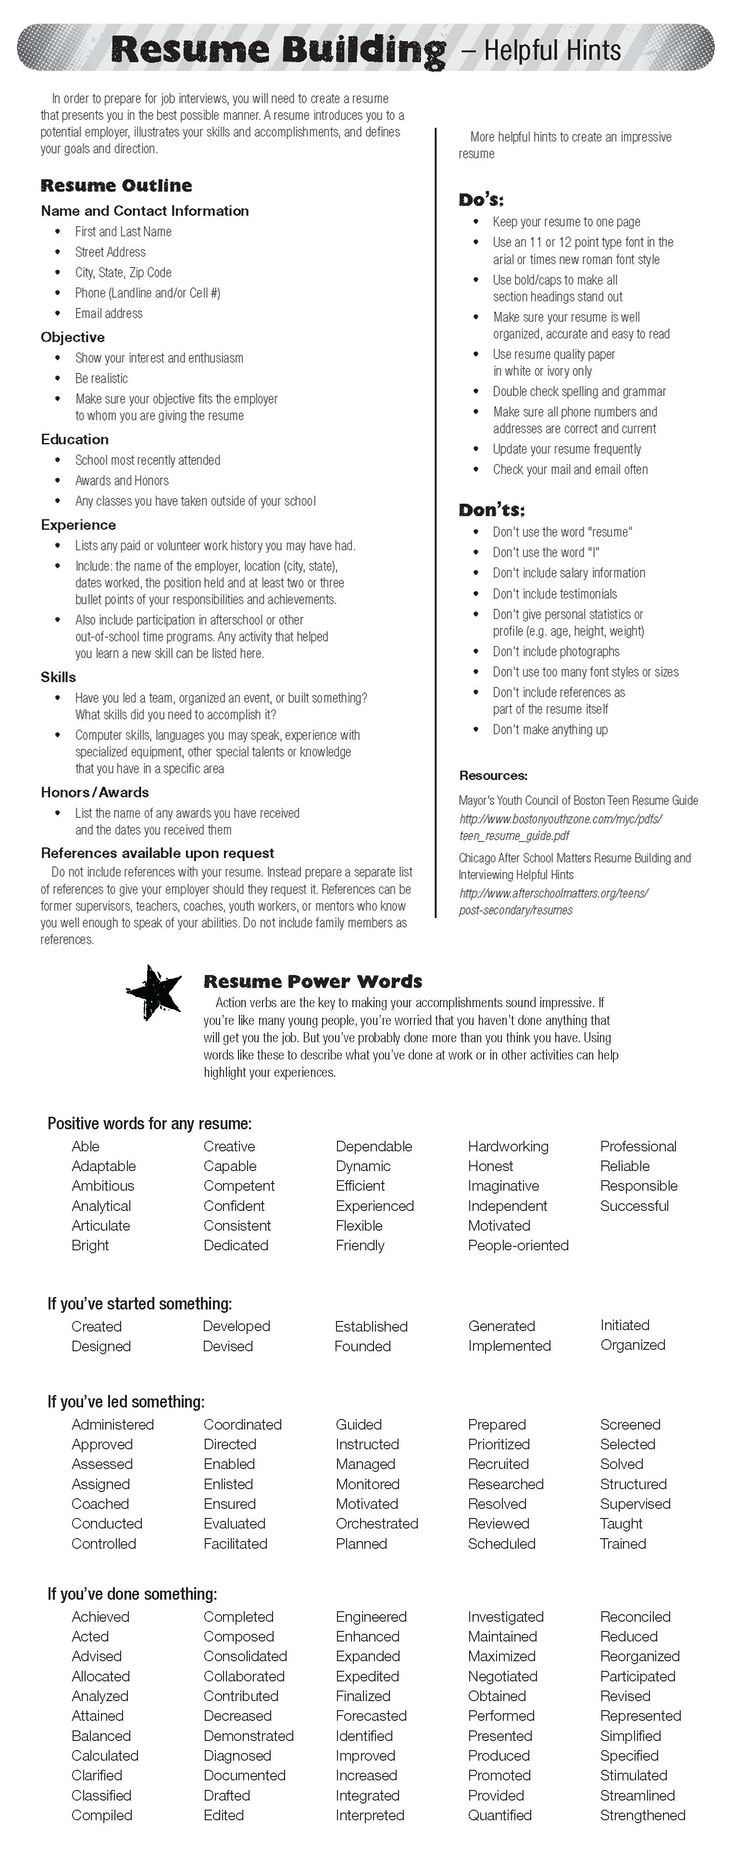 Opposenewapstandardsus  Unique  Ideas About Resume On Pinterest  Cv Format Resume Cv And  With Fetching  Ideas About Resume On Pinterest  Cv Format Resume Cv And Resume Templates With Cool Active Verbs Resume Also Sales Management Resume In Addition How To Present Your Resume And Words For A Resume As Well As Resume For Homemaker Additionally Mechanical Engineering Resume Objective From Pinterestcom With Opposenewapstandardsus  Fetching  Ideas About Resume On Pinterest  Cv Format Resume Cv And  With Cool  Ideas About Resume On Pinterest  Cv Format Resume Cv And Resume Templates And Unique Active Verbs Resume Also Sales Management Resume In Addition How To Present Your Resume From Pinterestcom